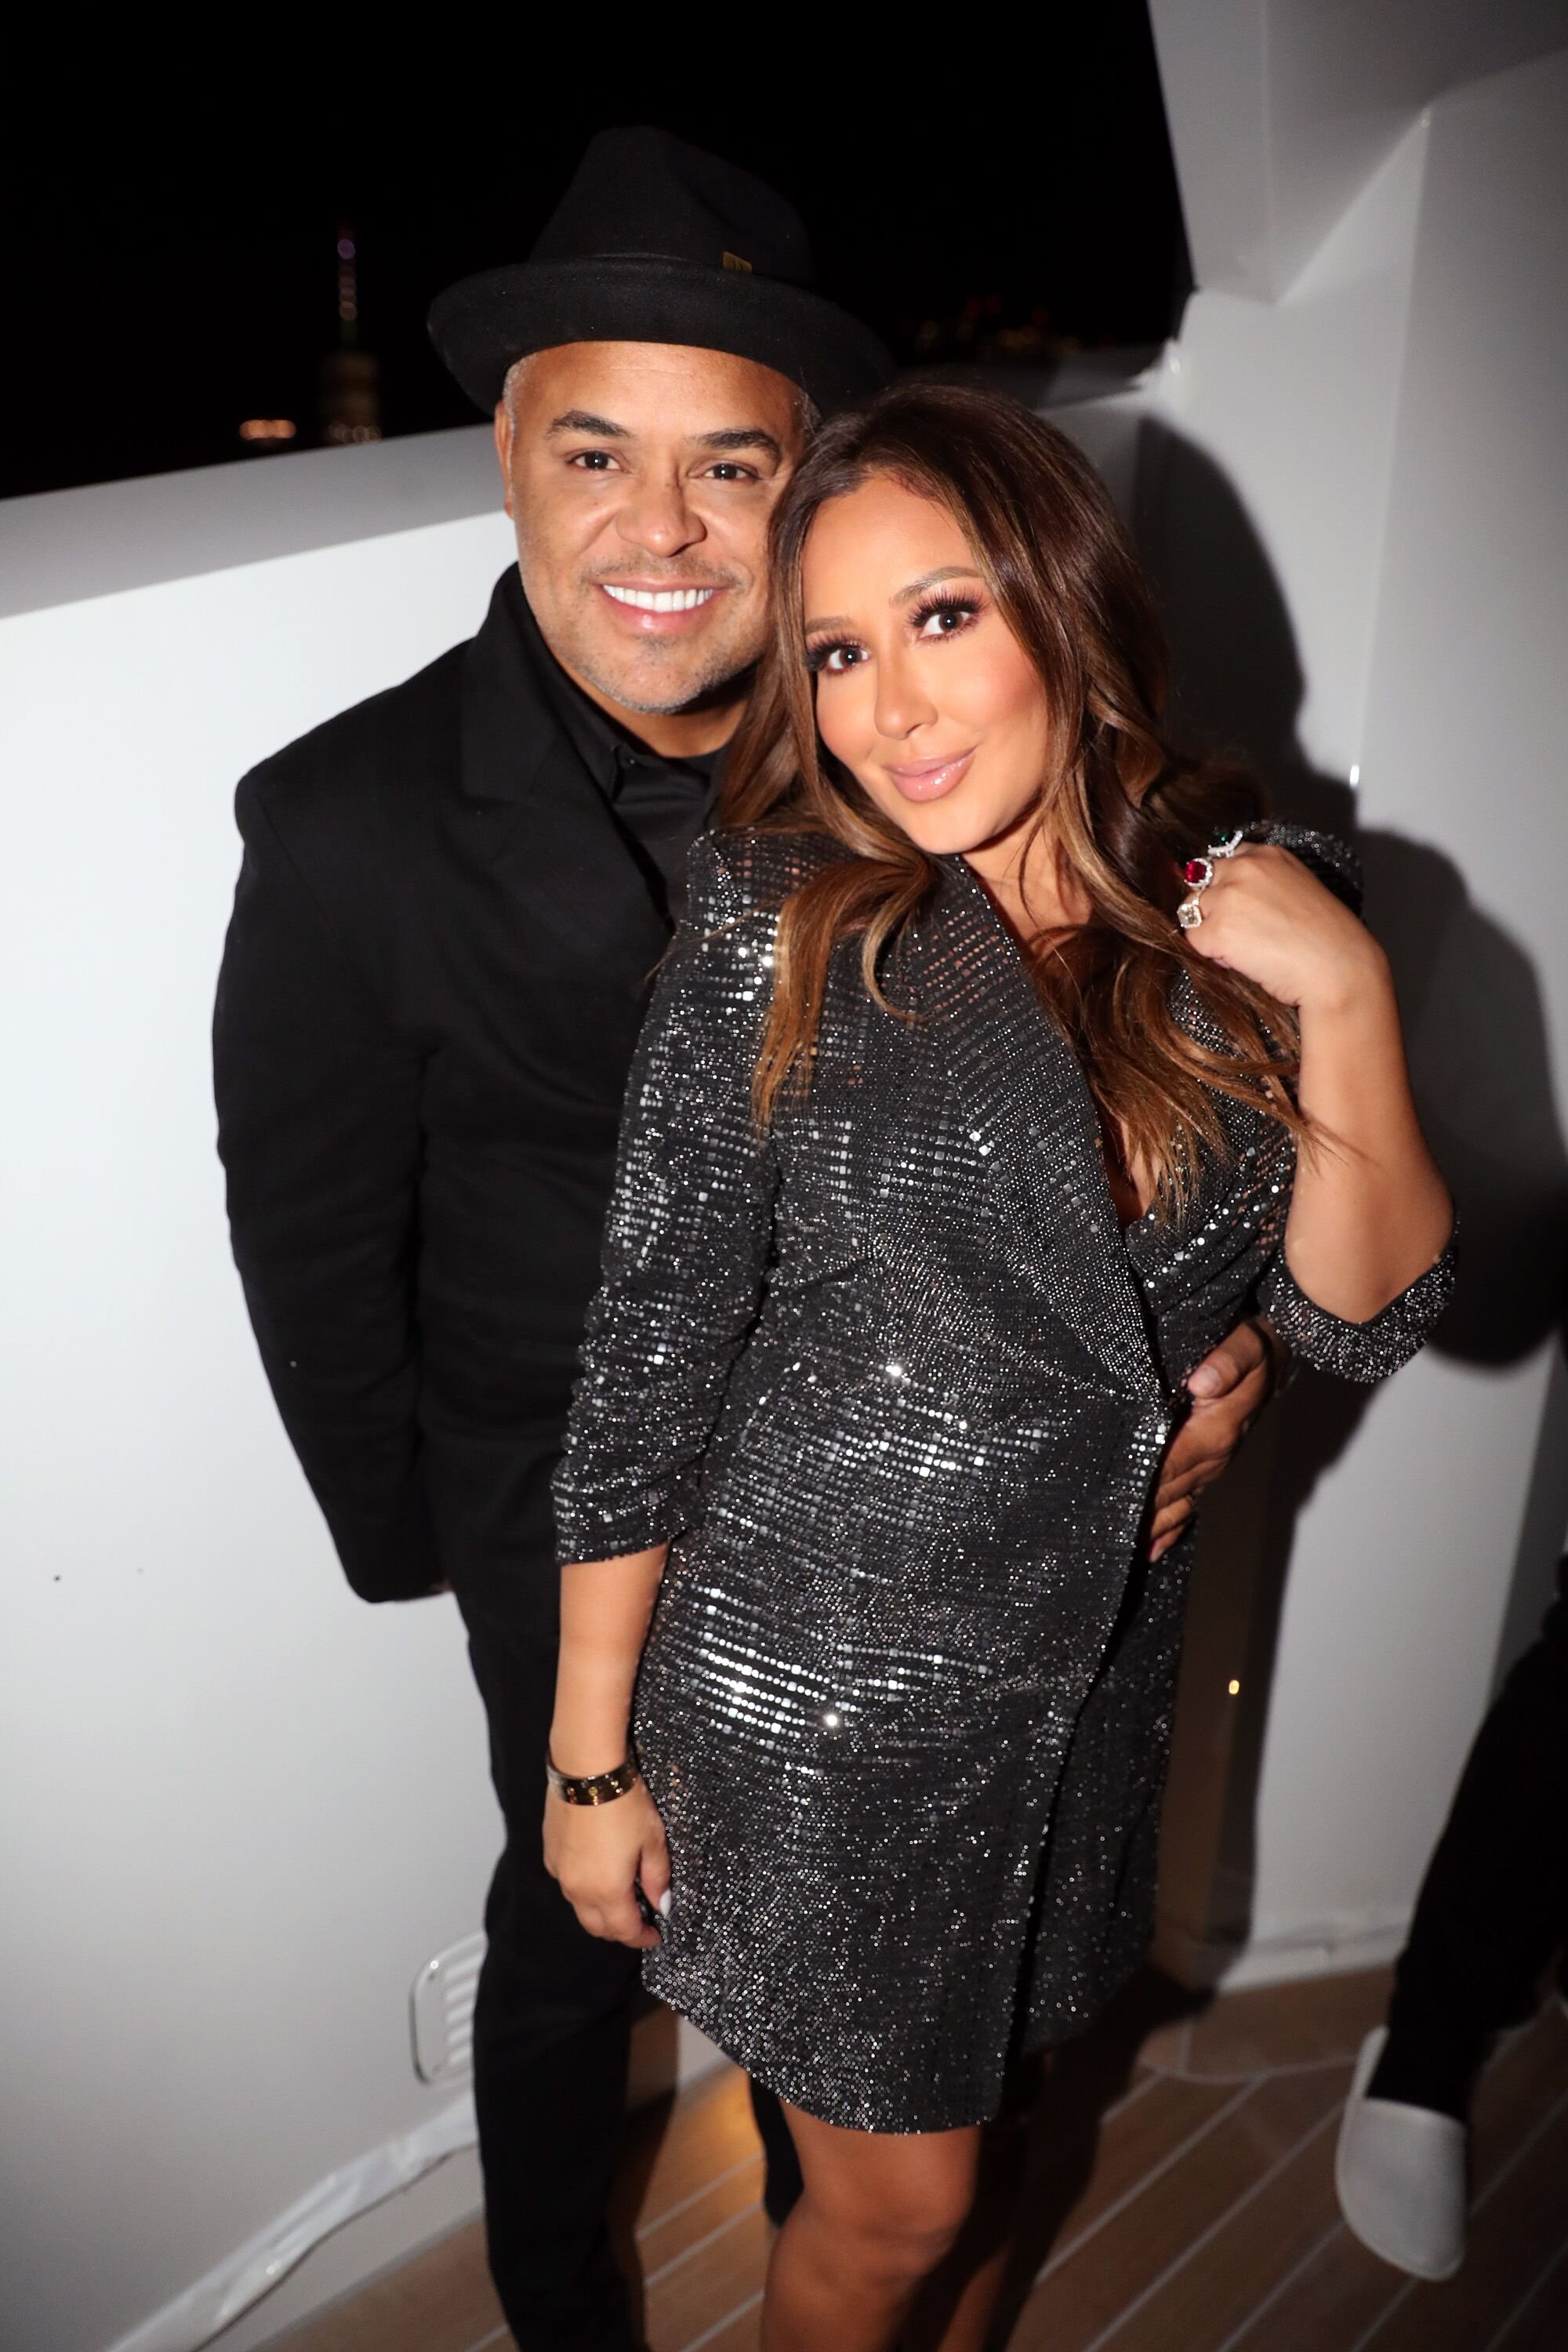 Adrienne Bailon and her husband, Israel Houghton attending an event on a yacht in October 2018. | Photo: Getty Images